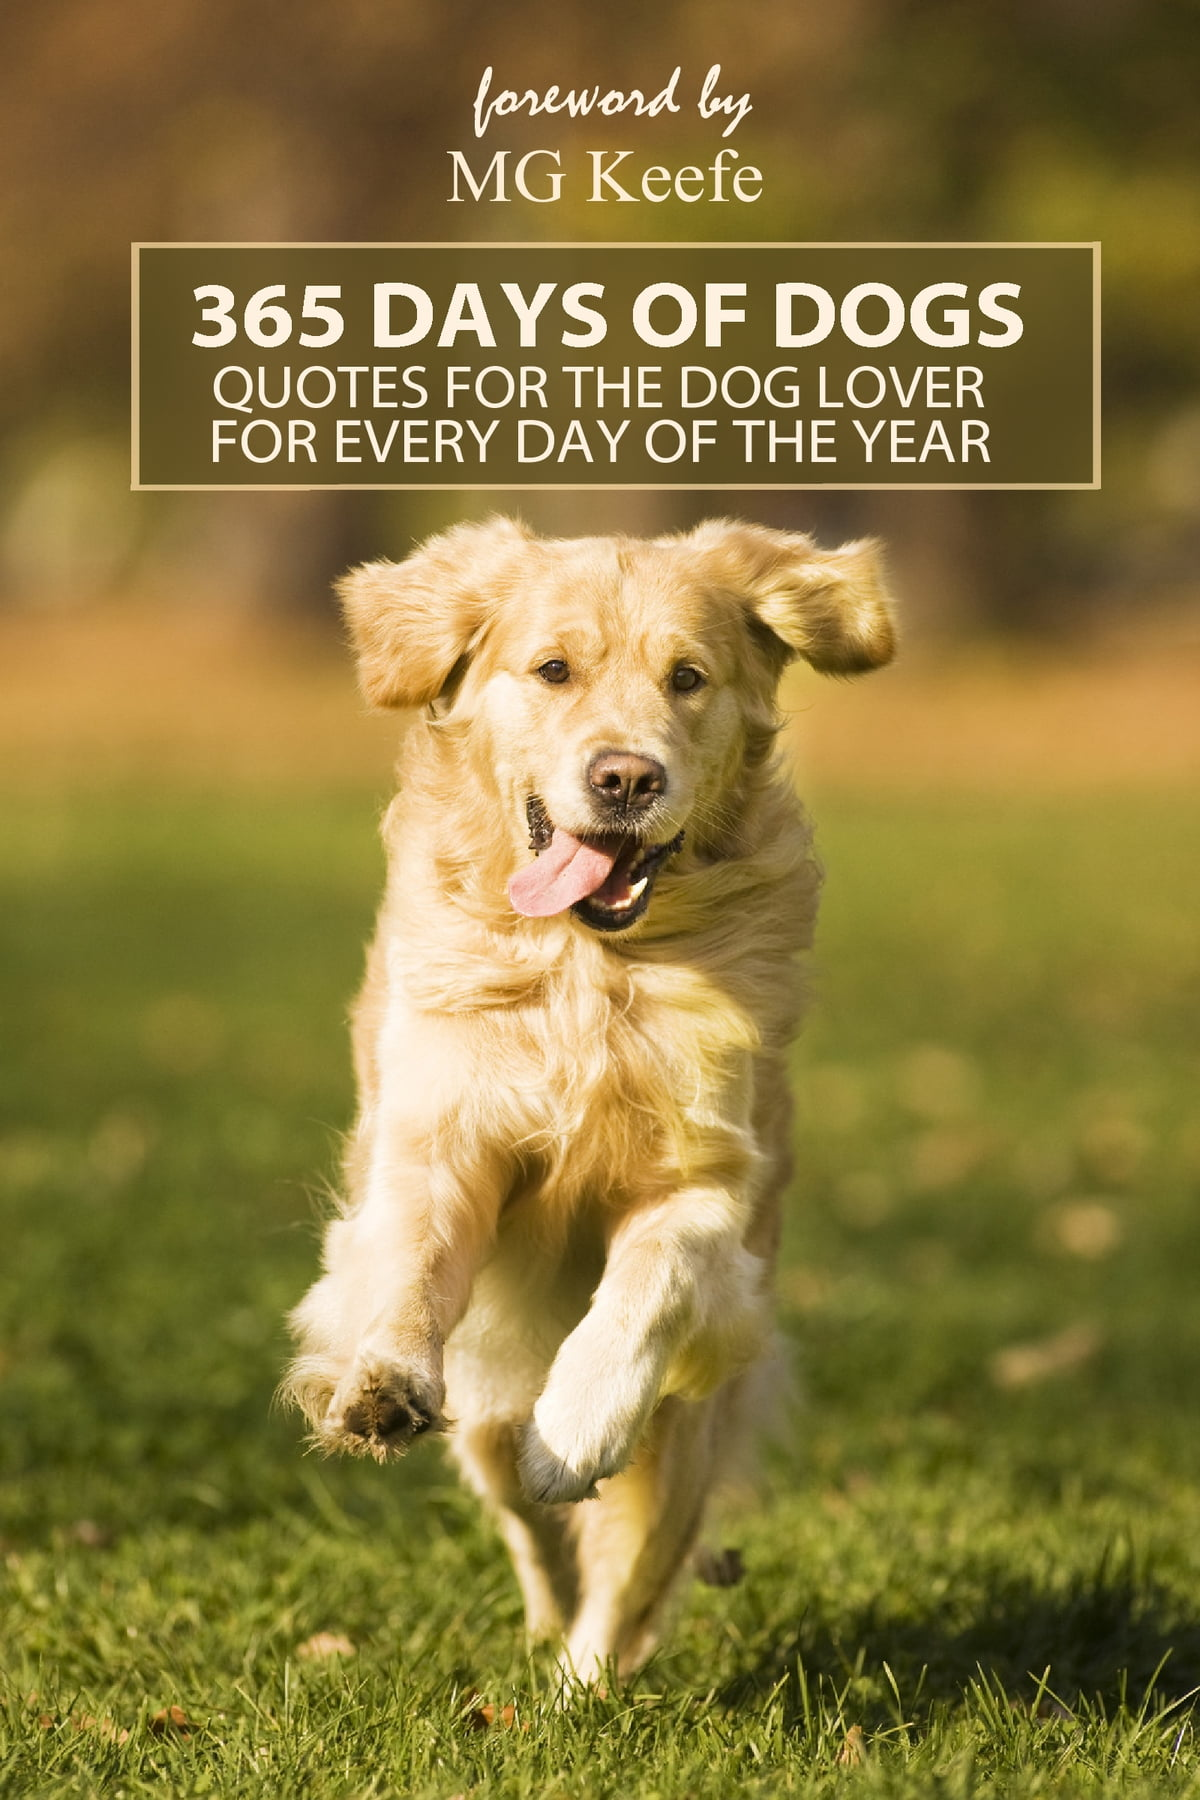 Quotes For Dogs 1